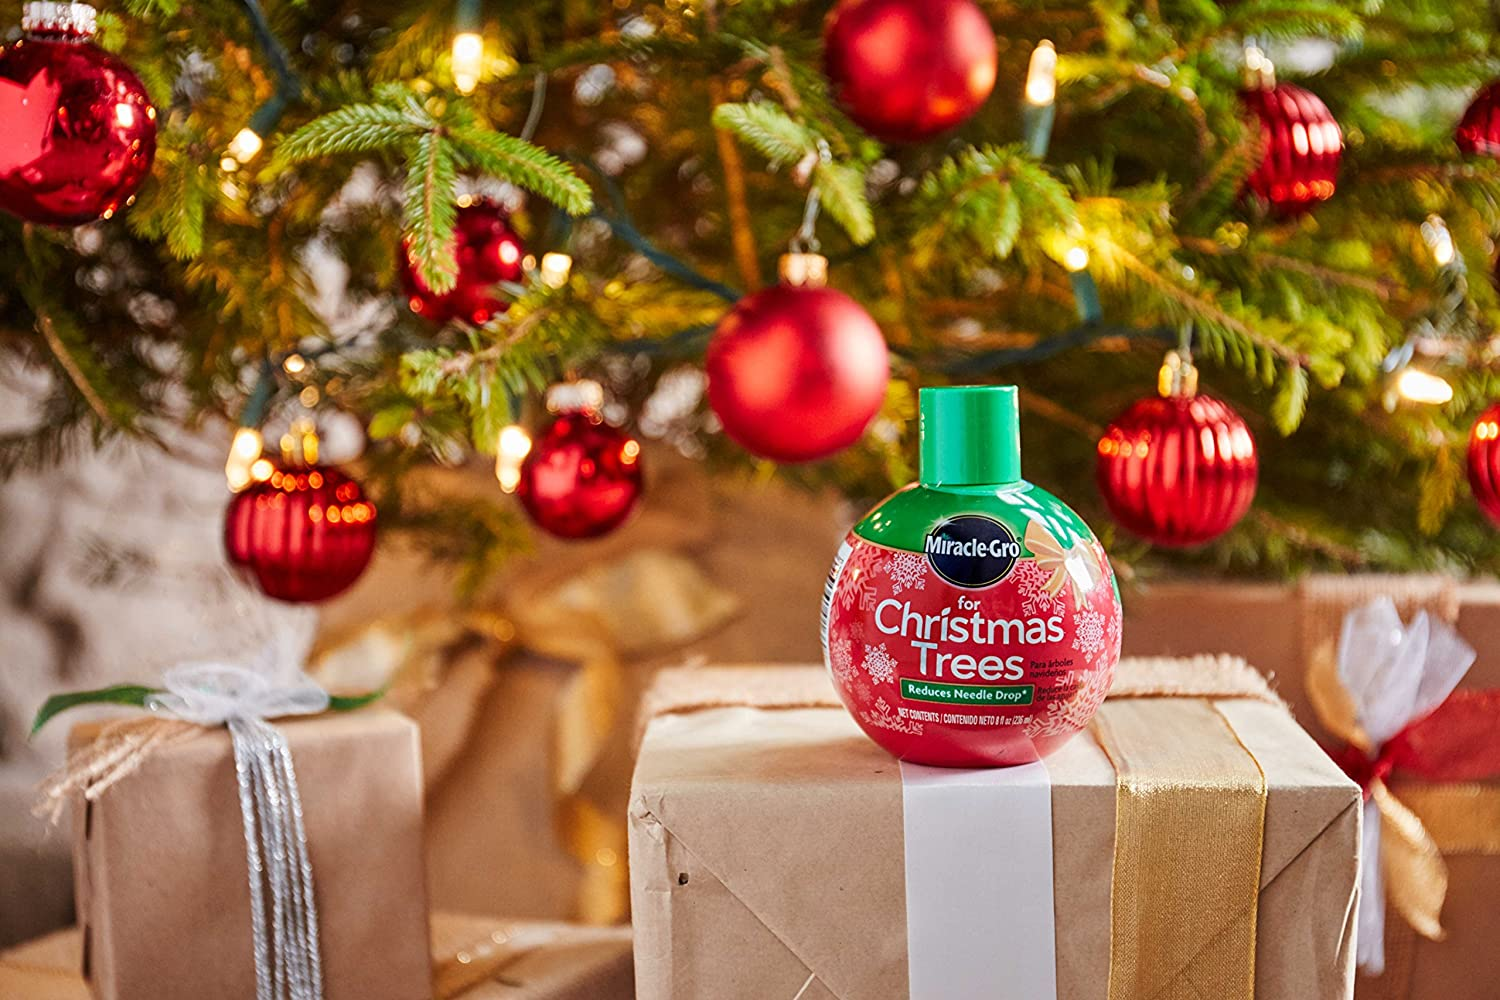 Miracle Gro For Christmas Trees